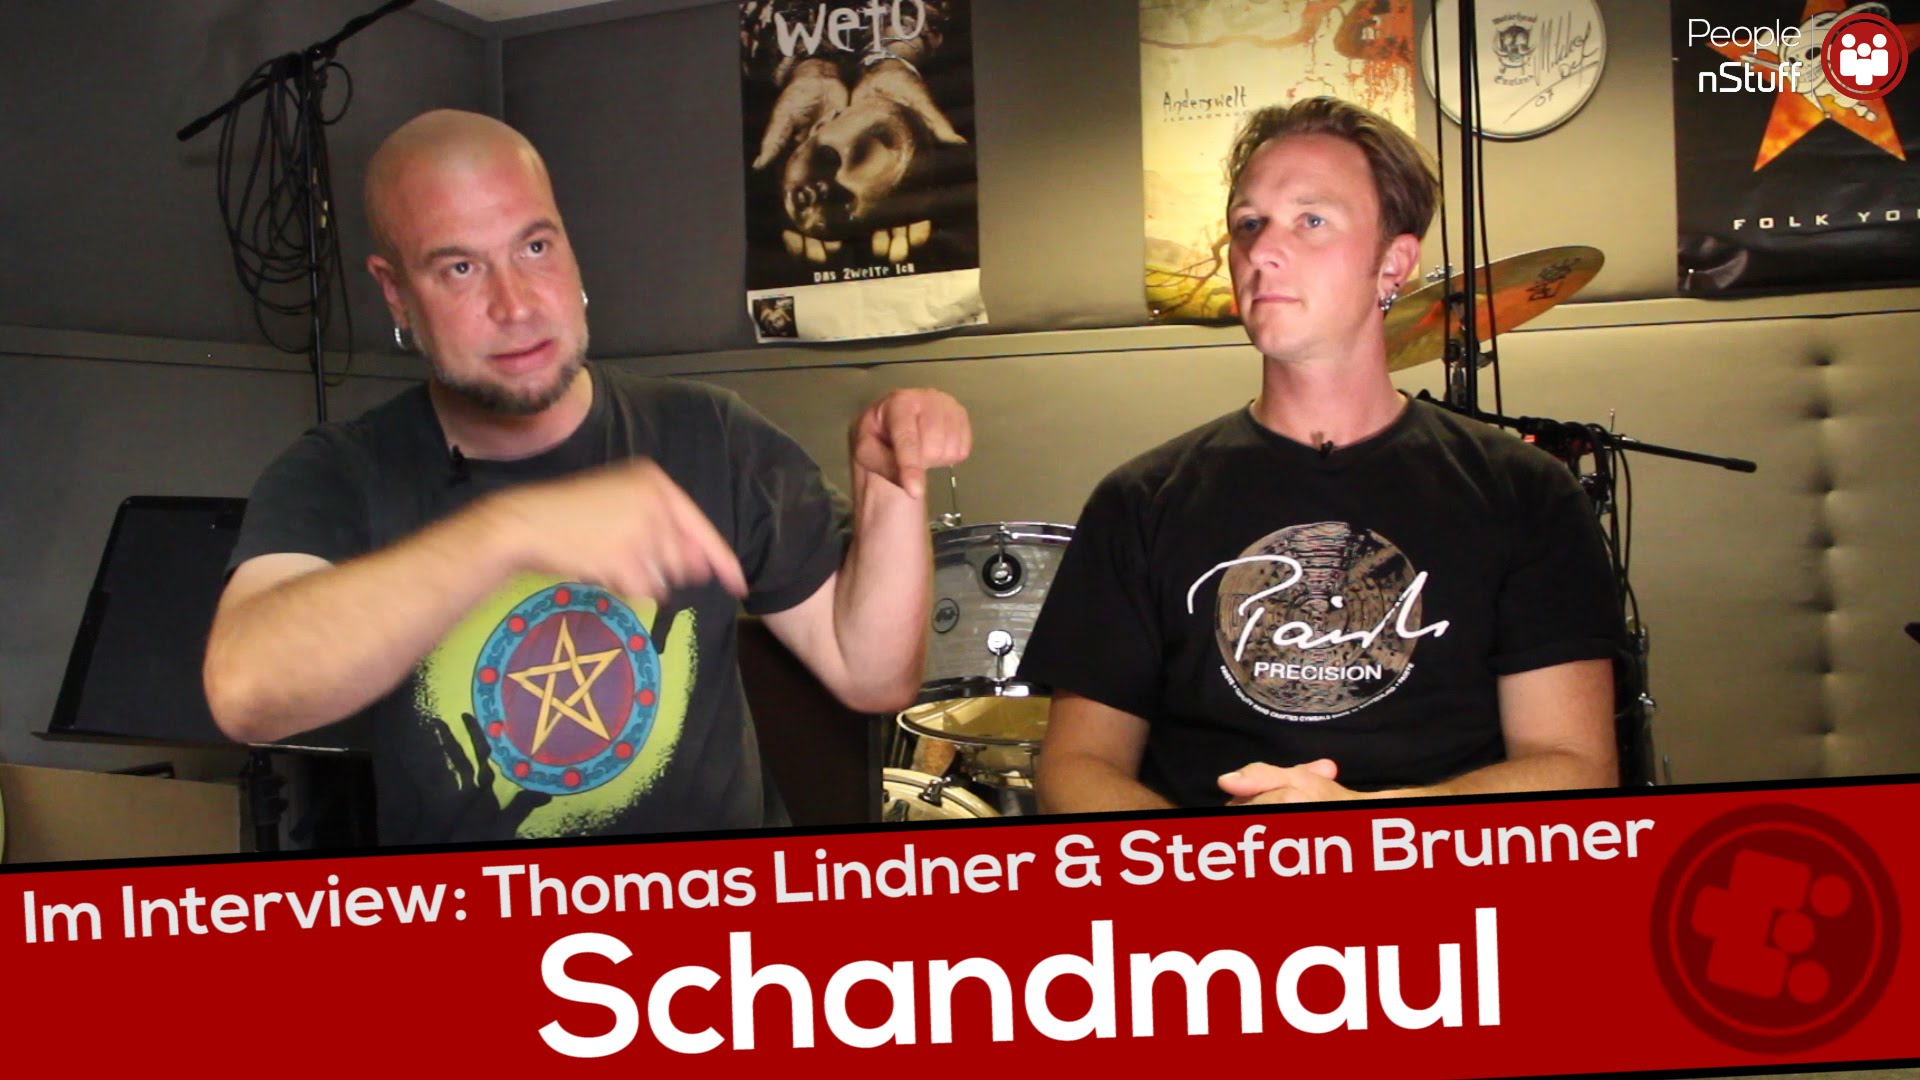 Music nStuff: Interview Schandmaul (Thomas Lindner & Stefan Brunner)